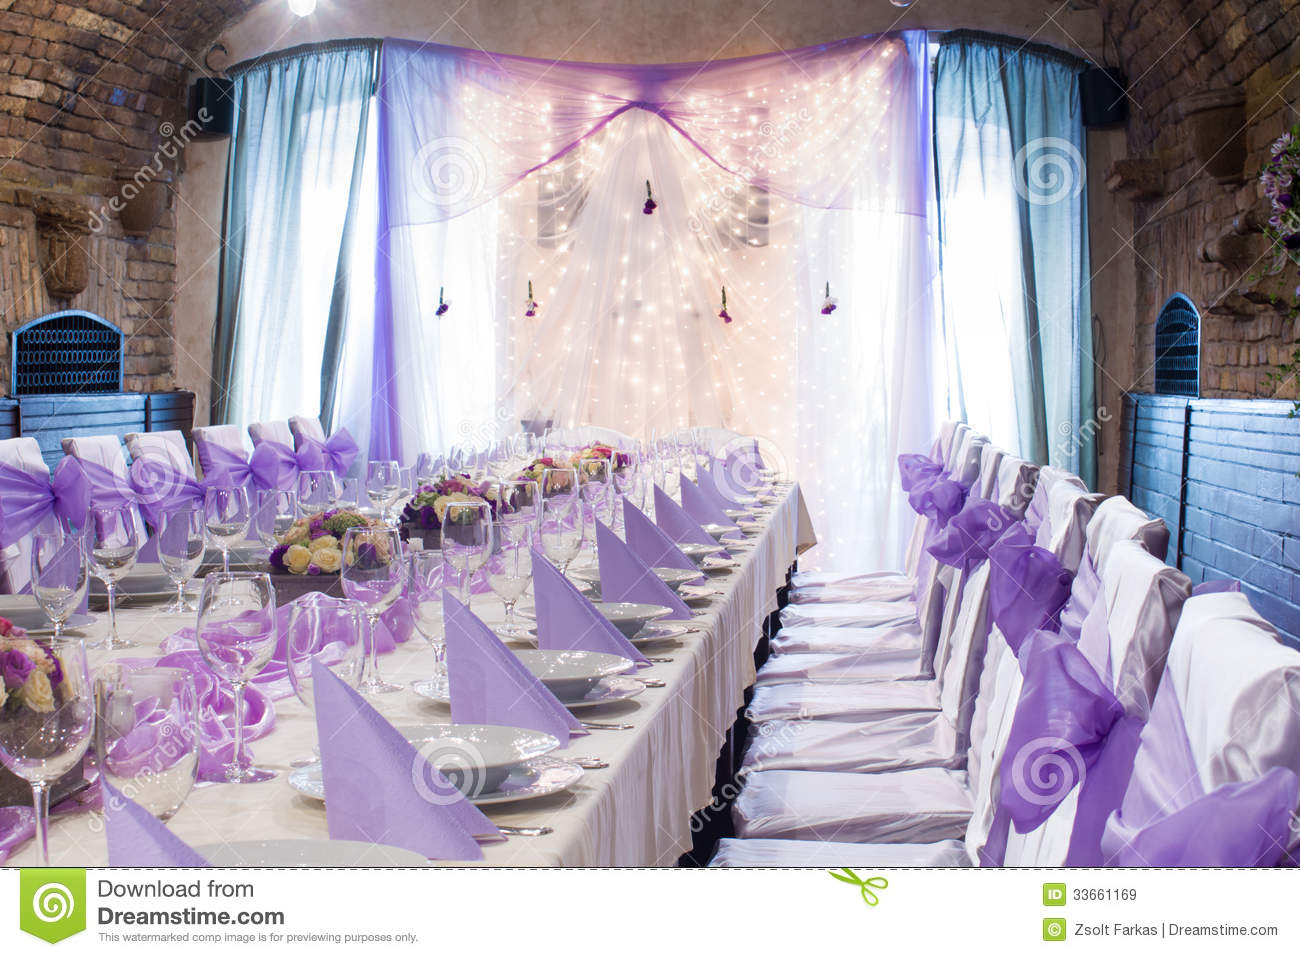 Table Set For Wedding Or Another Catered Event Dinner Stock Image